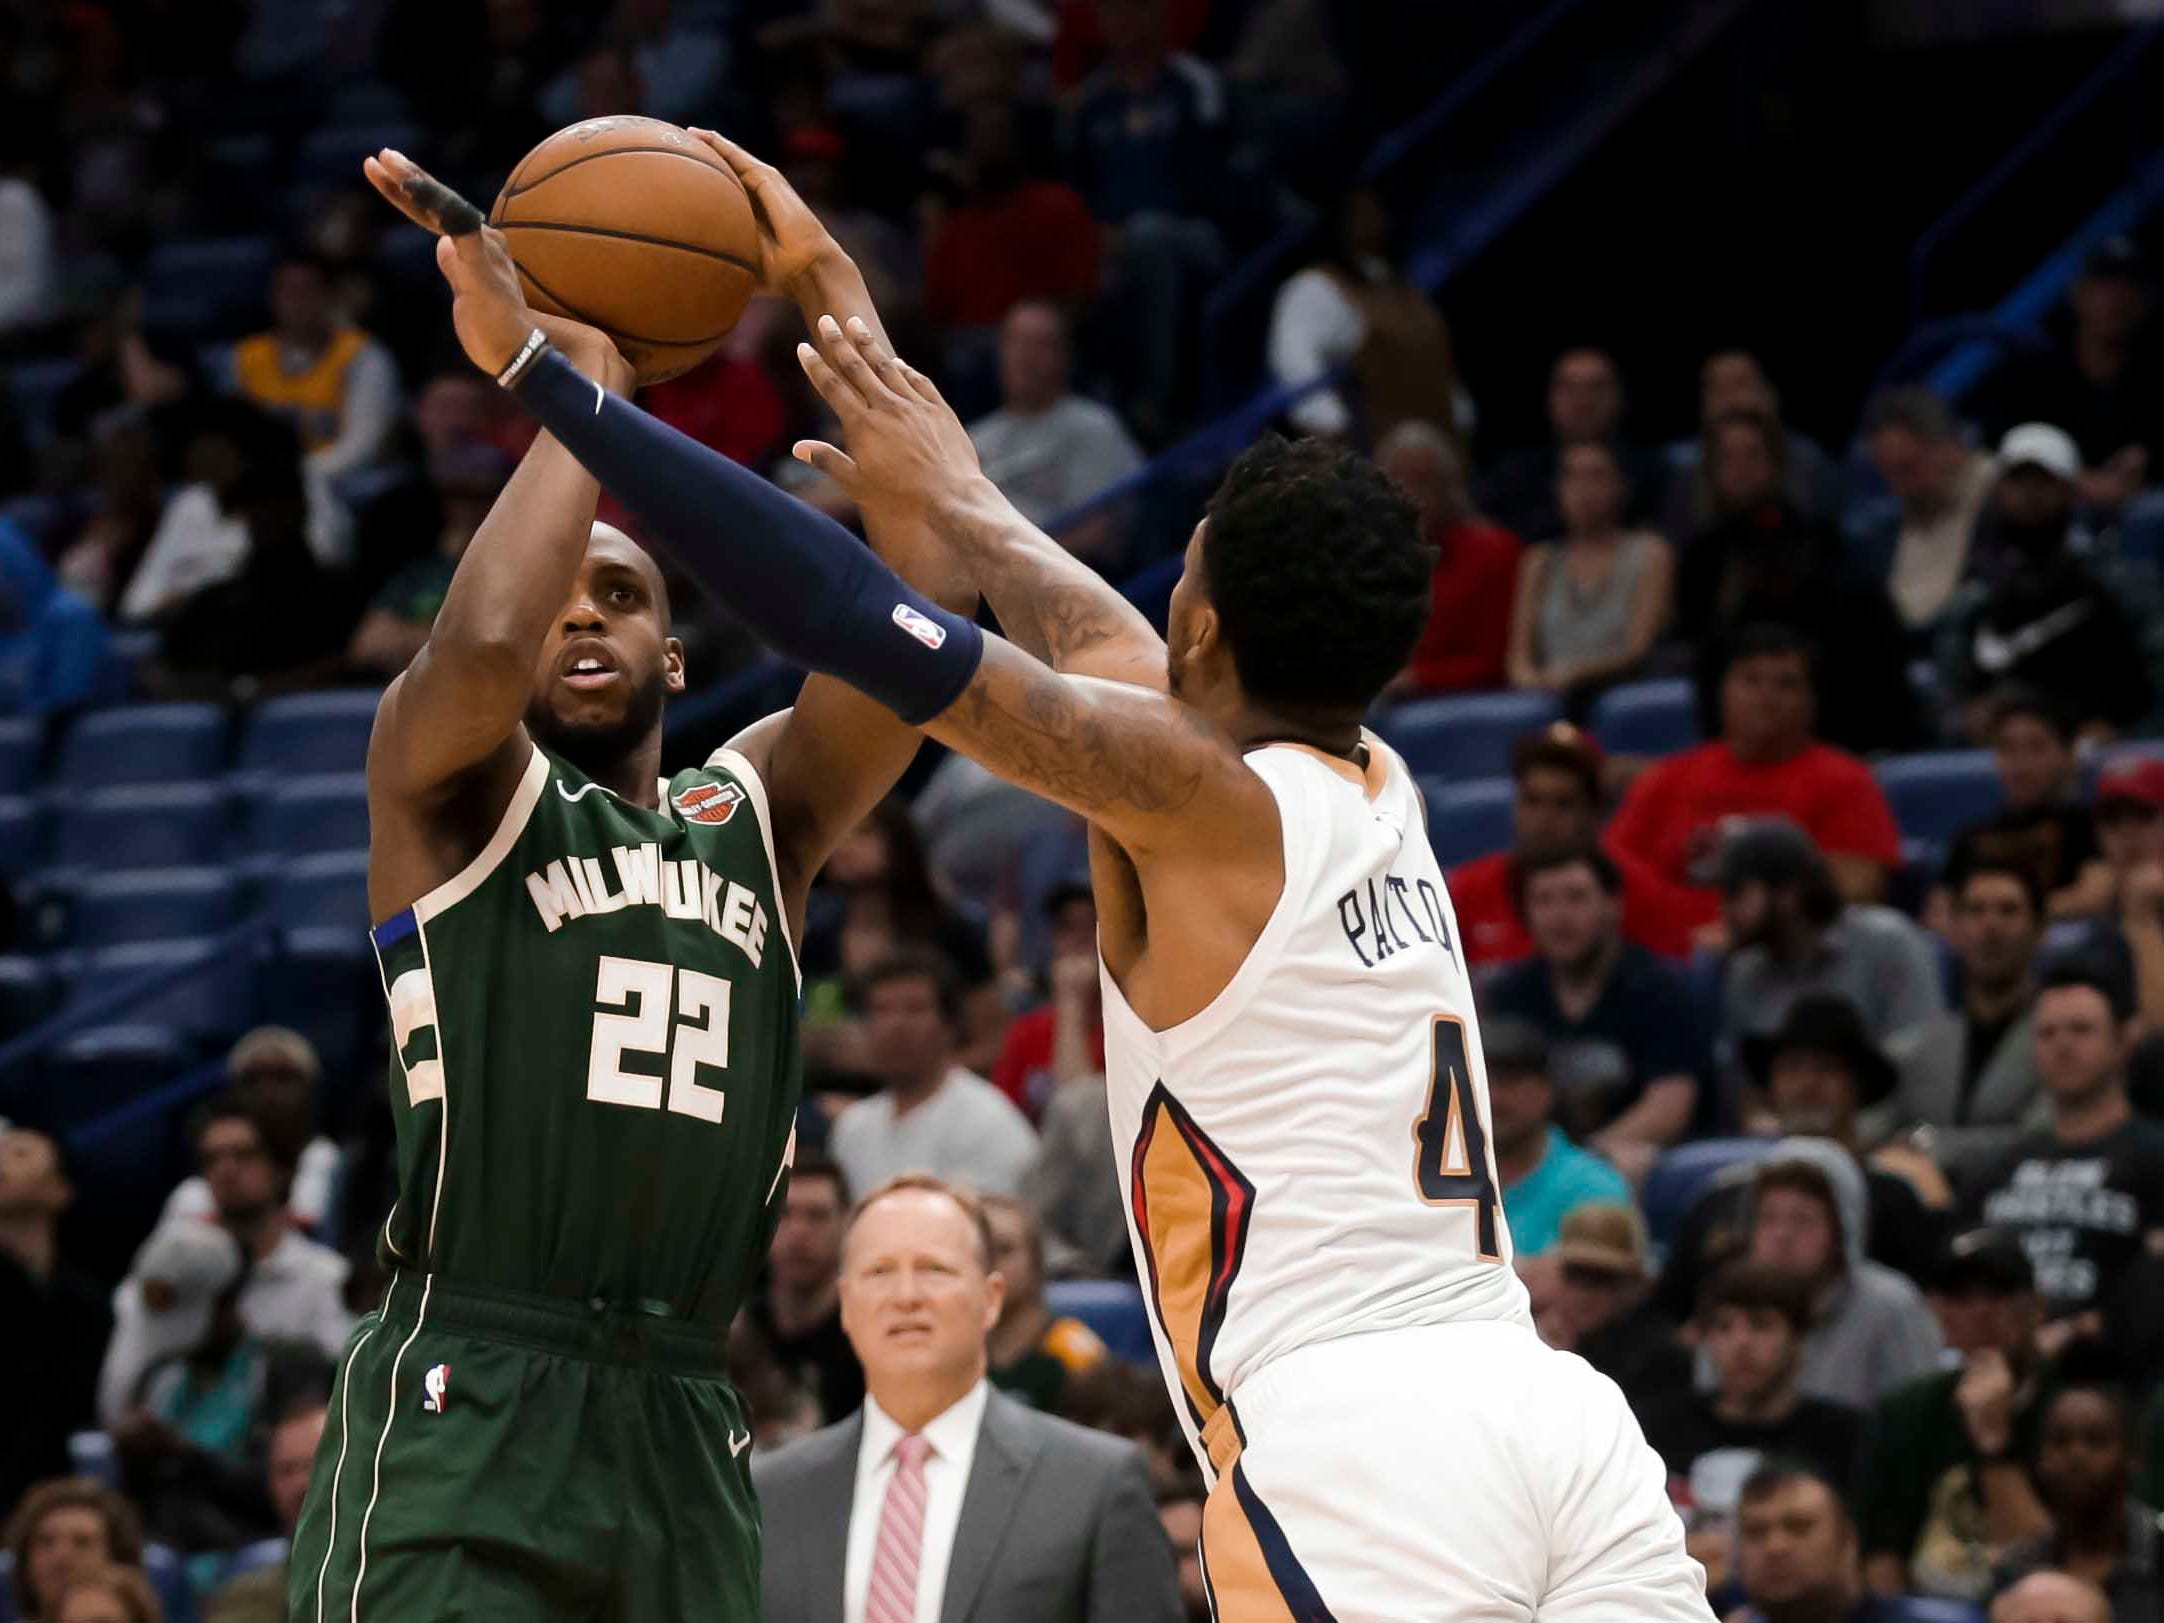 Bucks forward Khris Middleton gets ready to launch a shot over Pelicans guard Elfrid Payton during the second half.